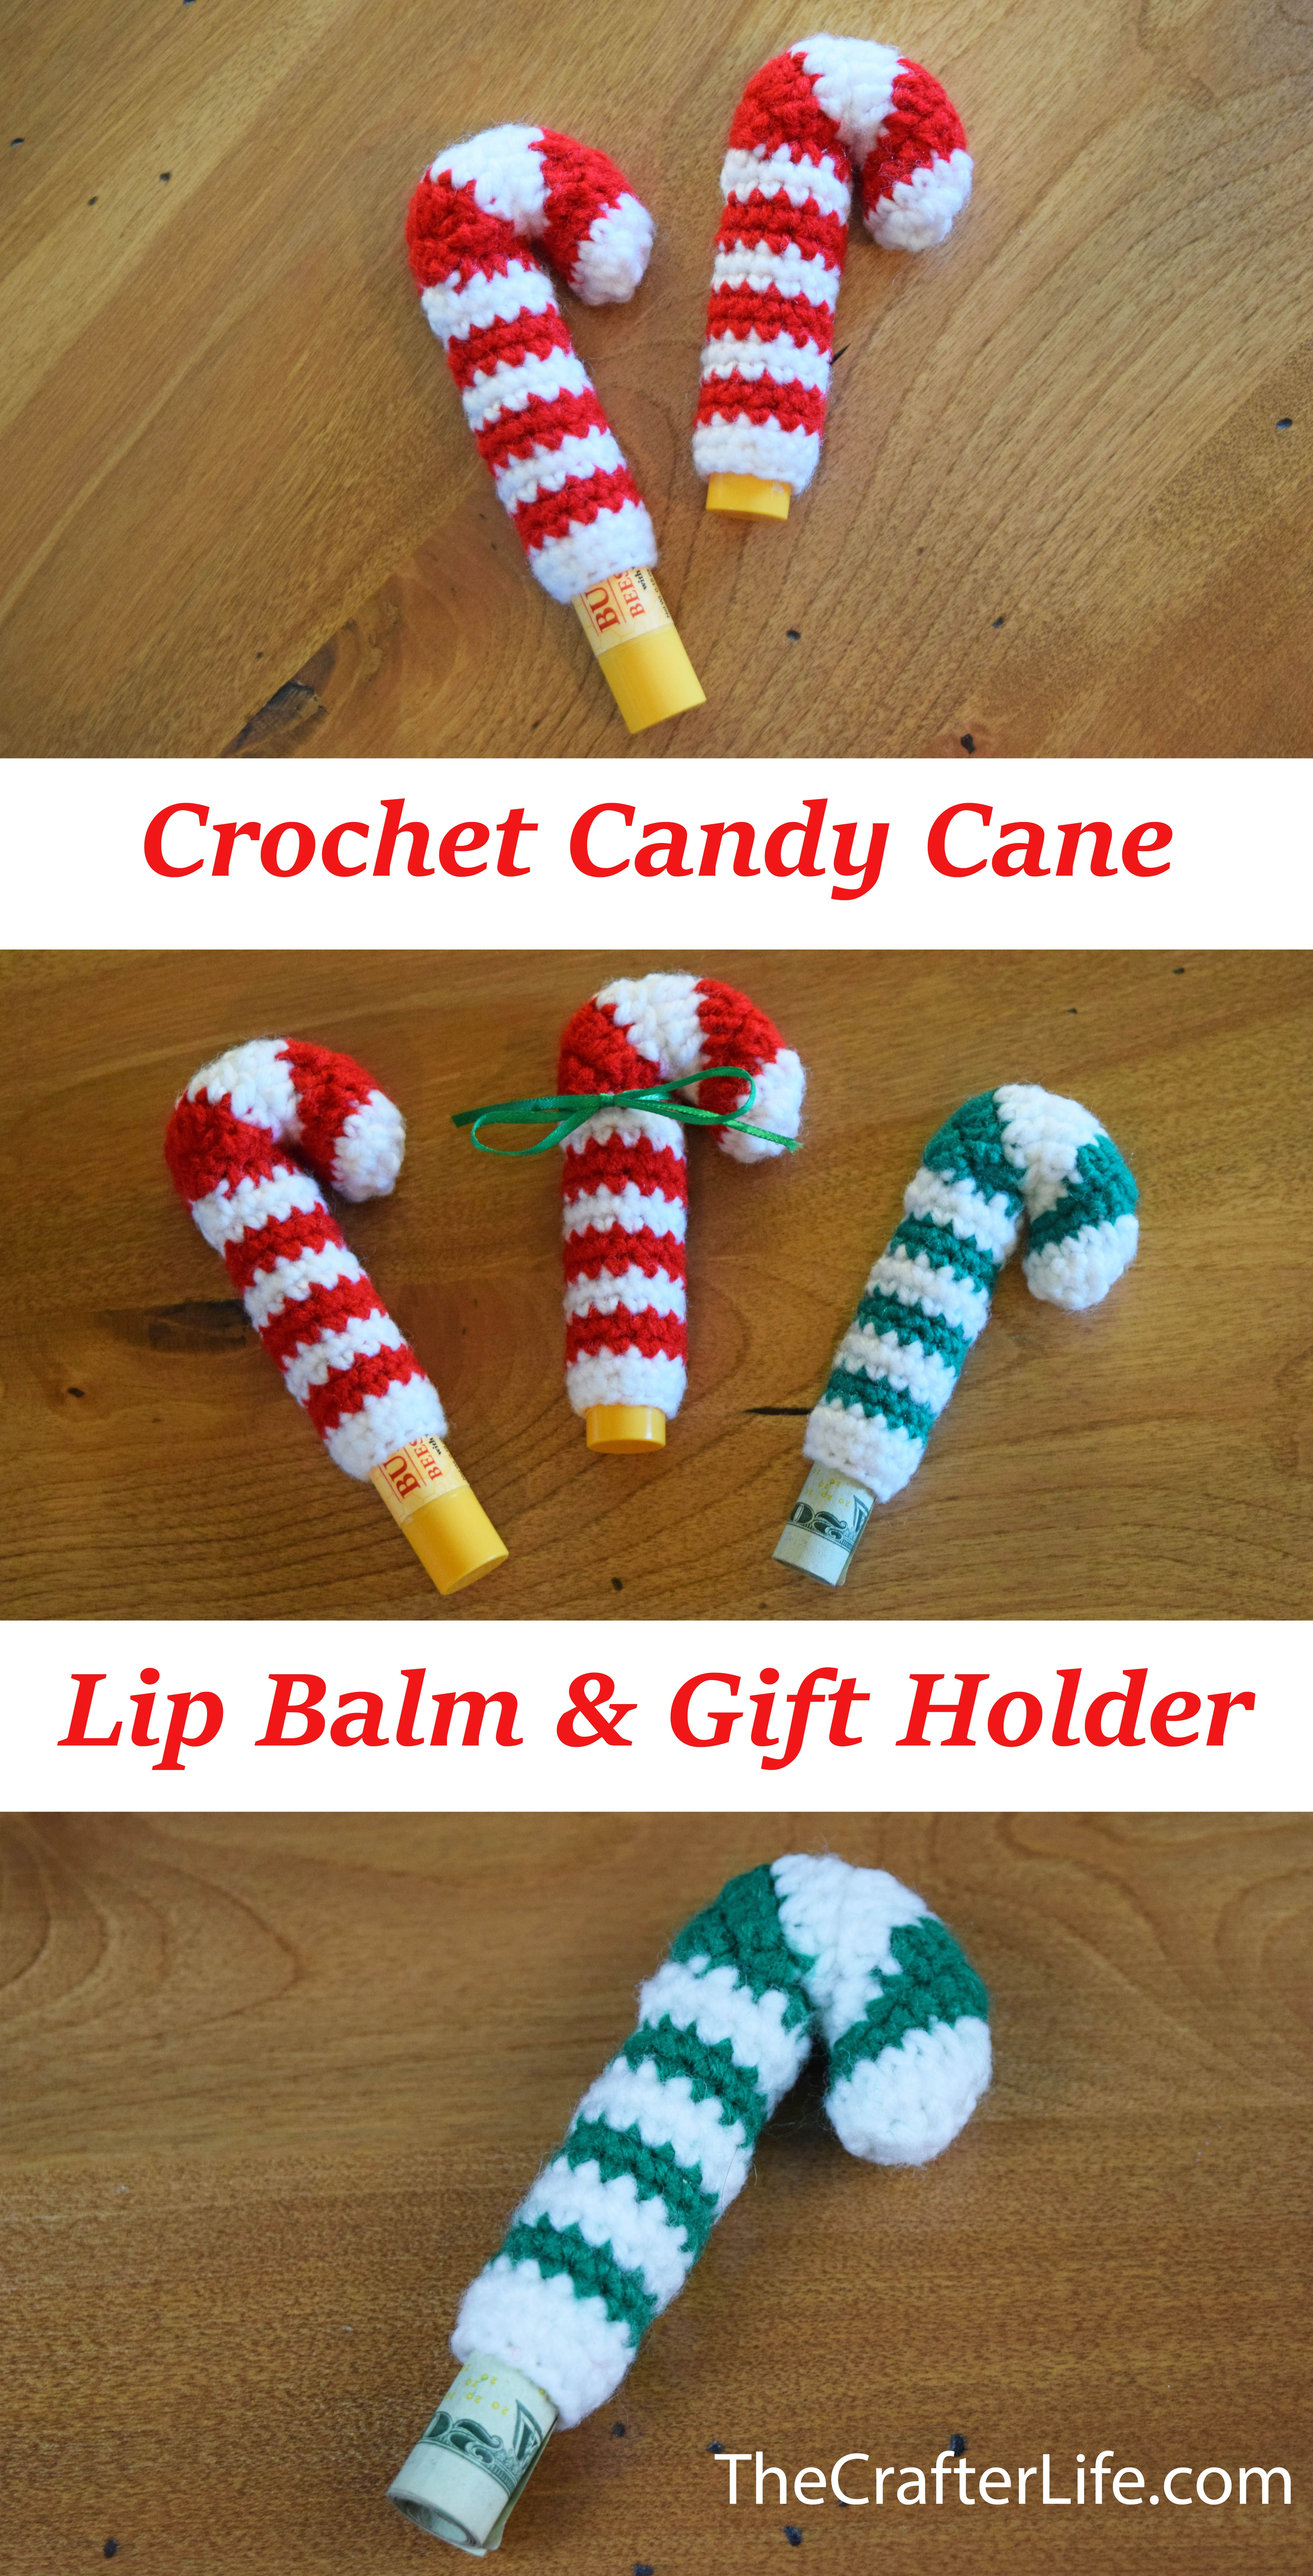 Crochet Candy Cane Holders